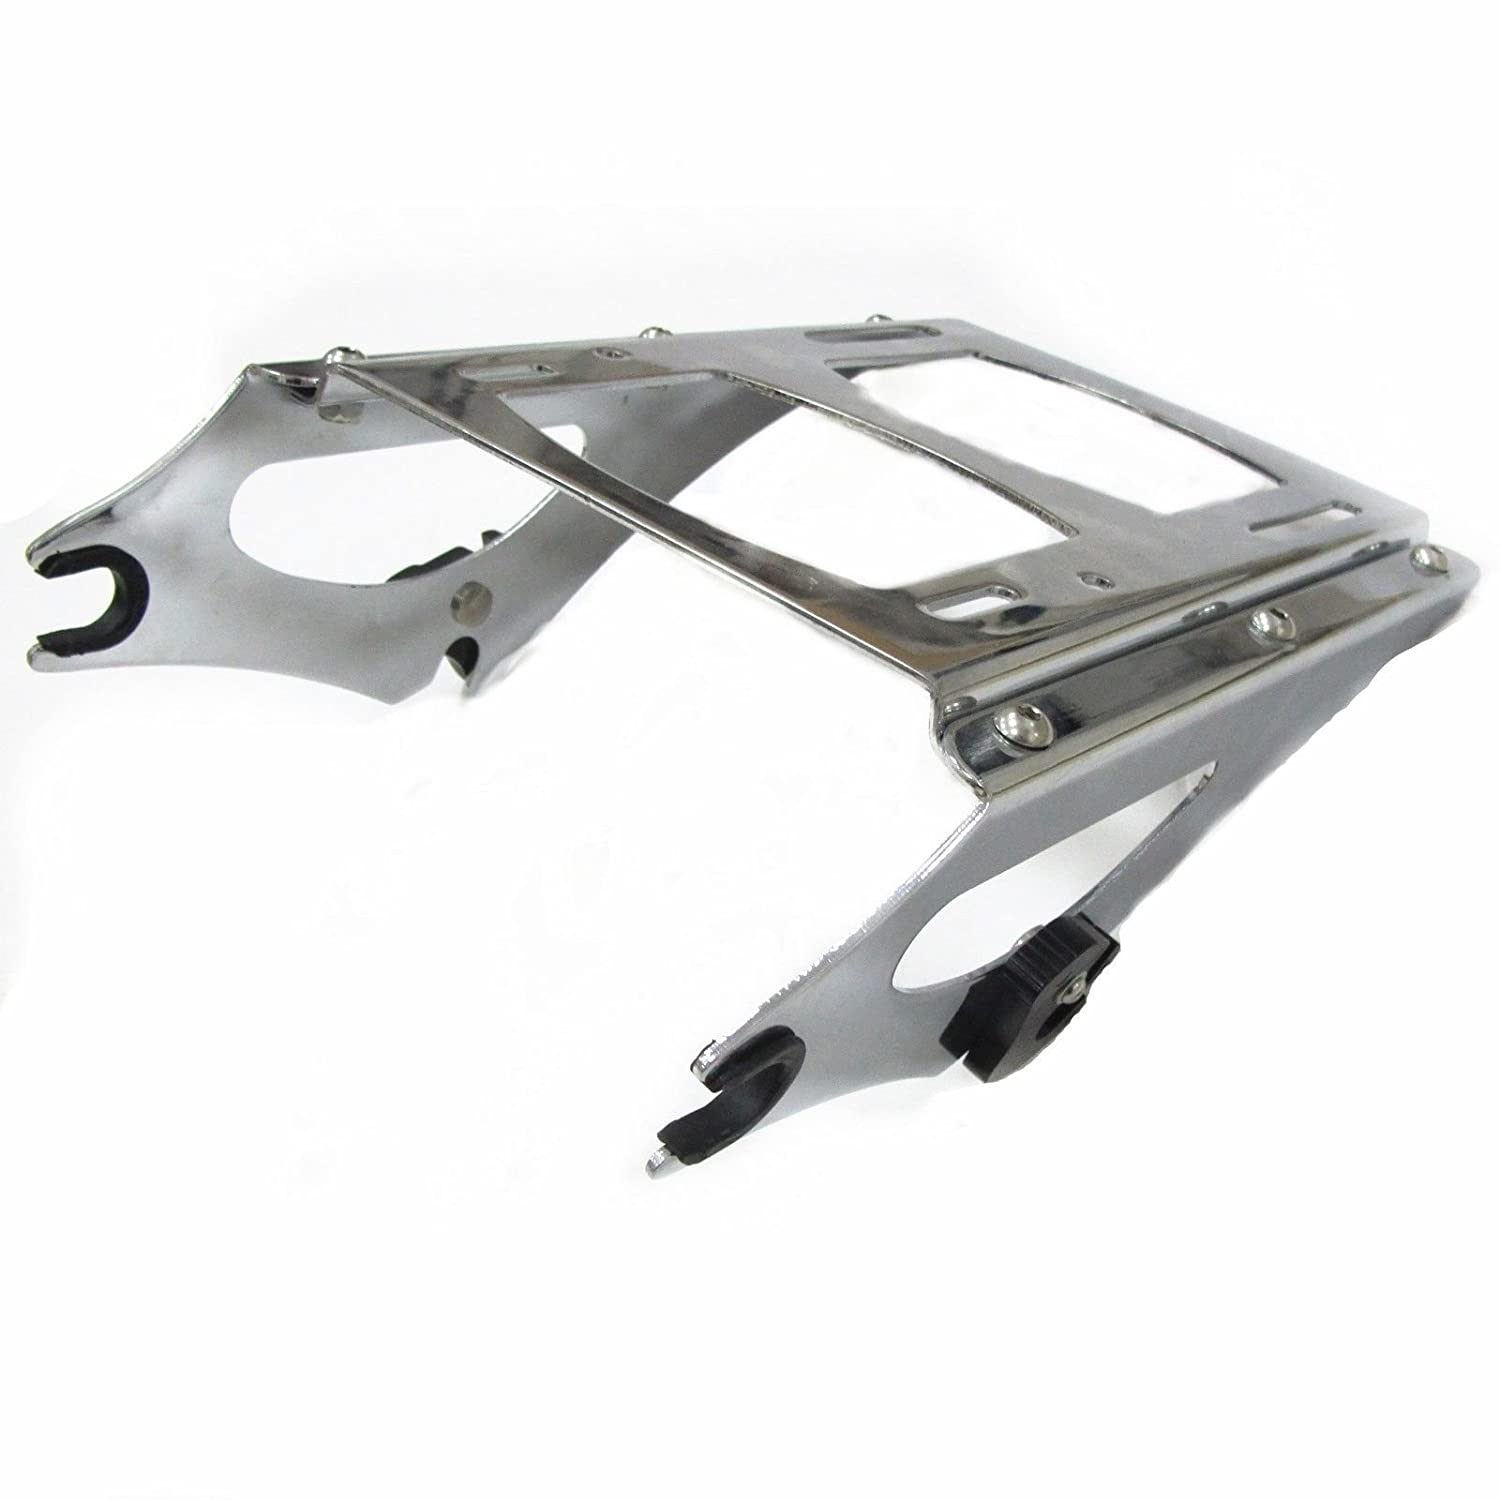 Chrome Detachable 2 Up Tour Pak Pack Mounting Rack for Harley Touring 2009-2013 by EGO